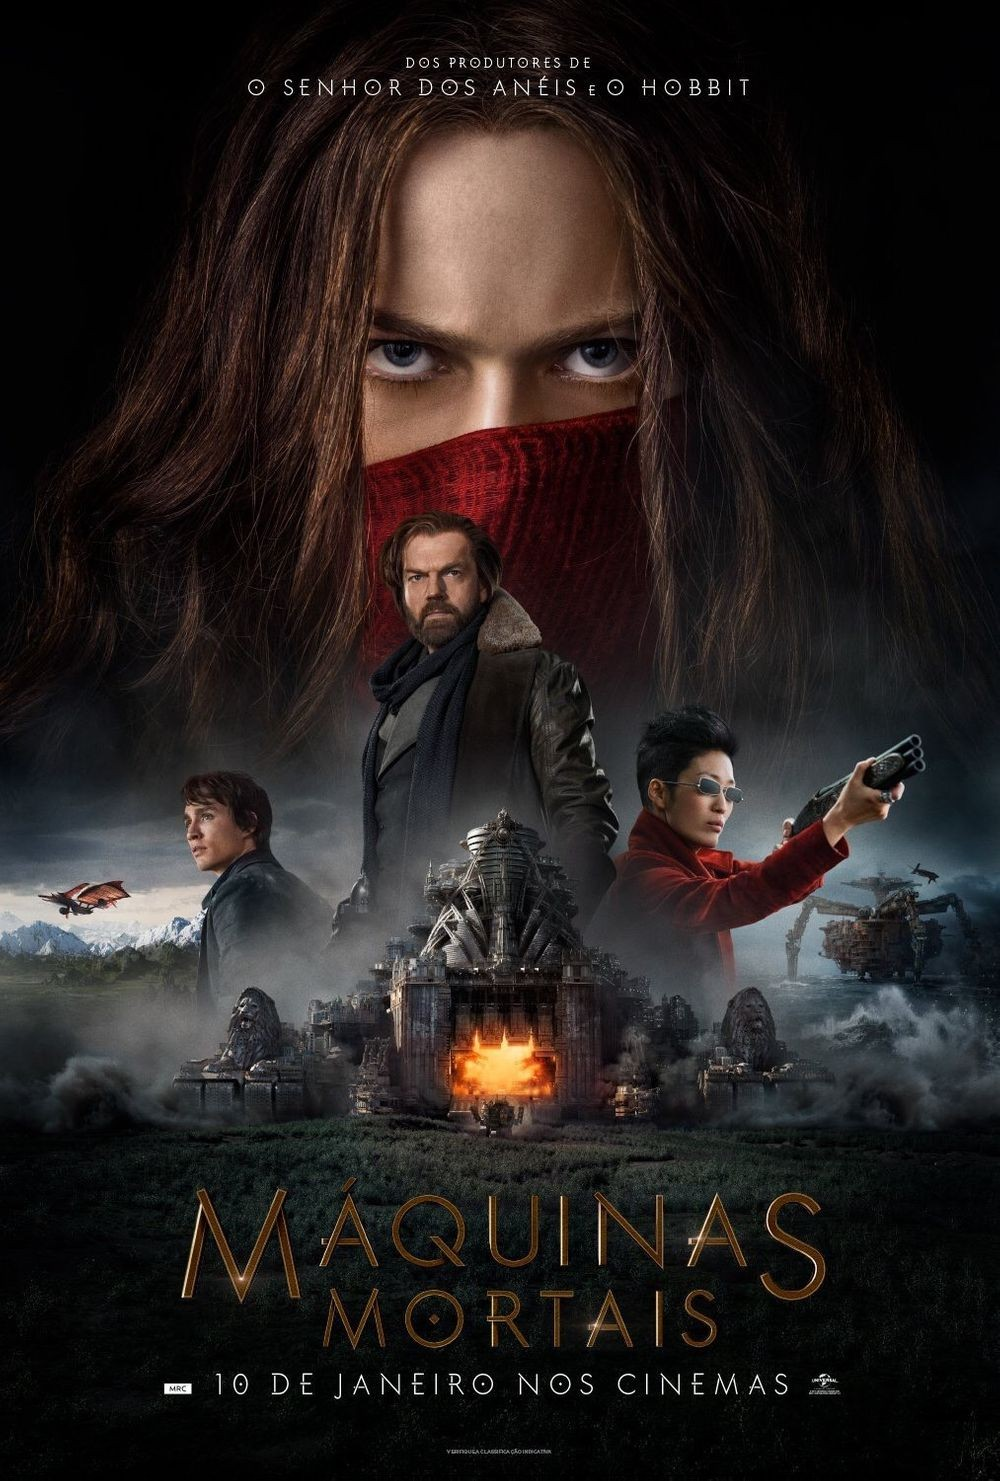 Mortal Engines (2018) 3D HSBS Dual Audio Hindi 720p BDRip 900MB ESubs Download